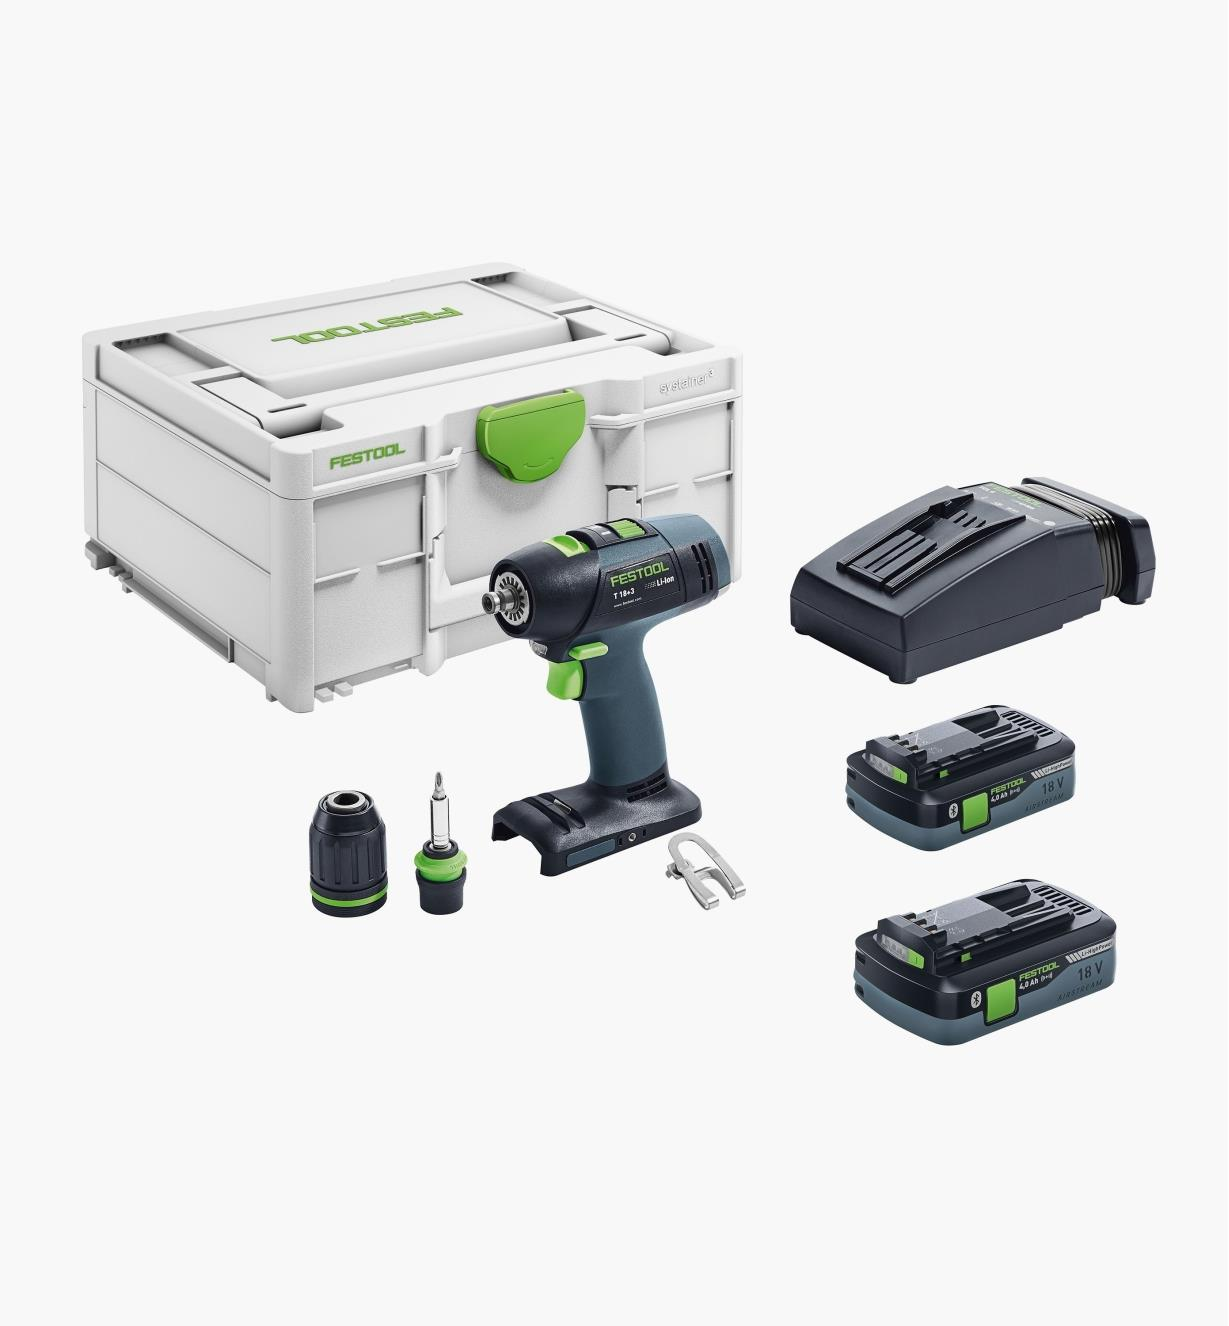 ZC576457 - Ensemble perceuse-visseuse sans fil T 18+3 Festool